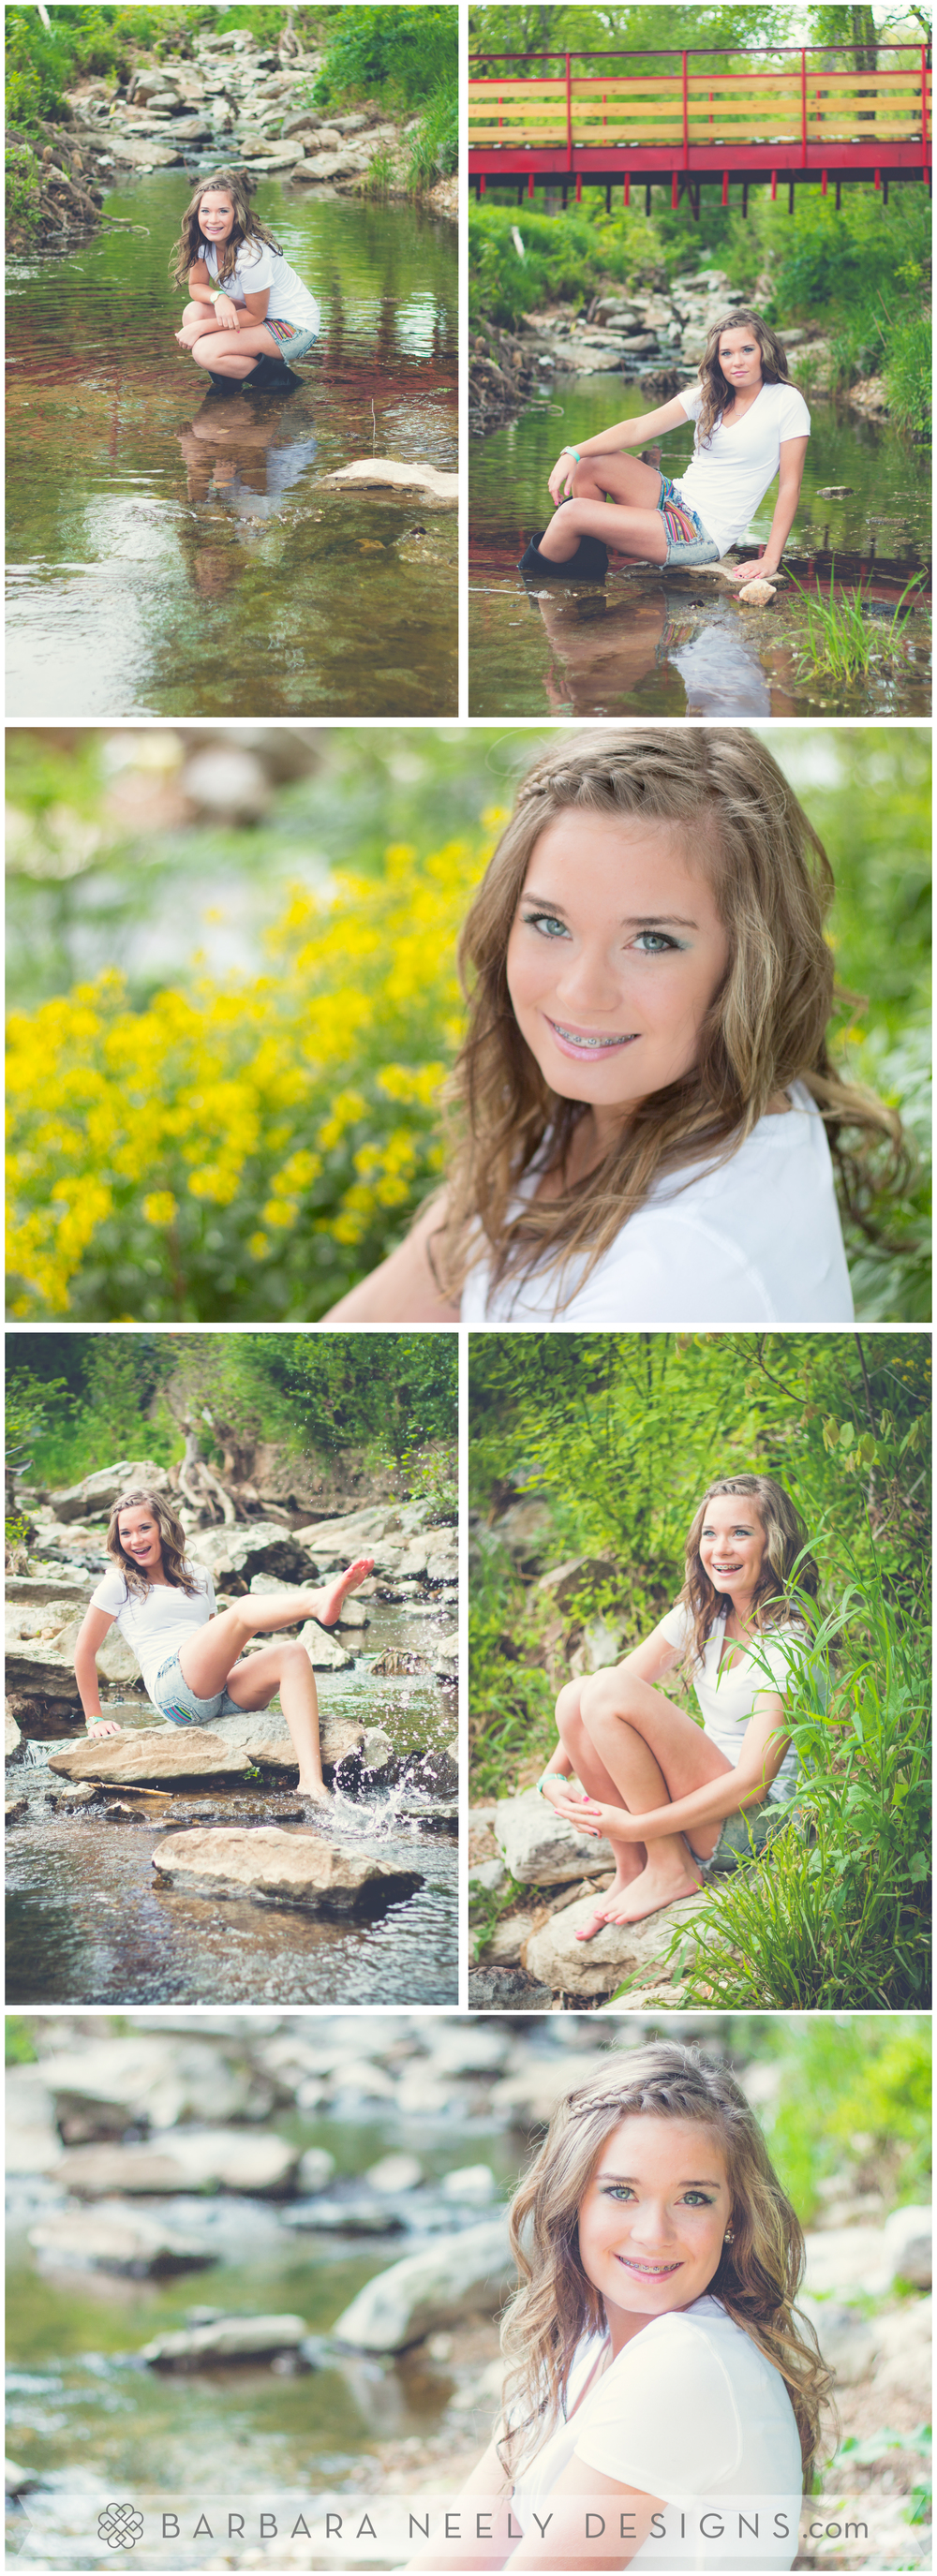 Best Country Senior Photos in Missouri - Mandy Senior 2015 A